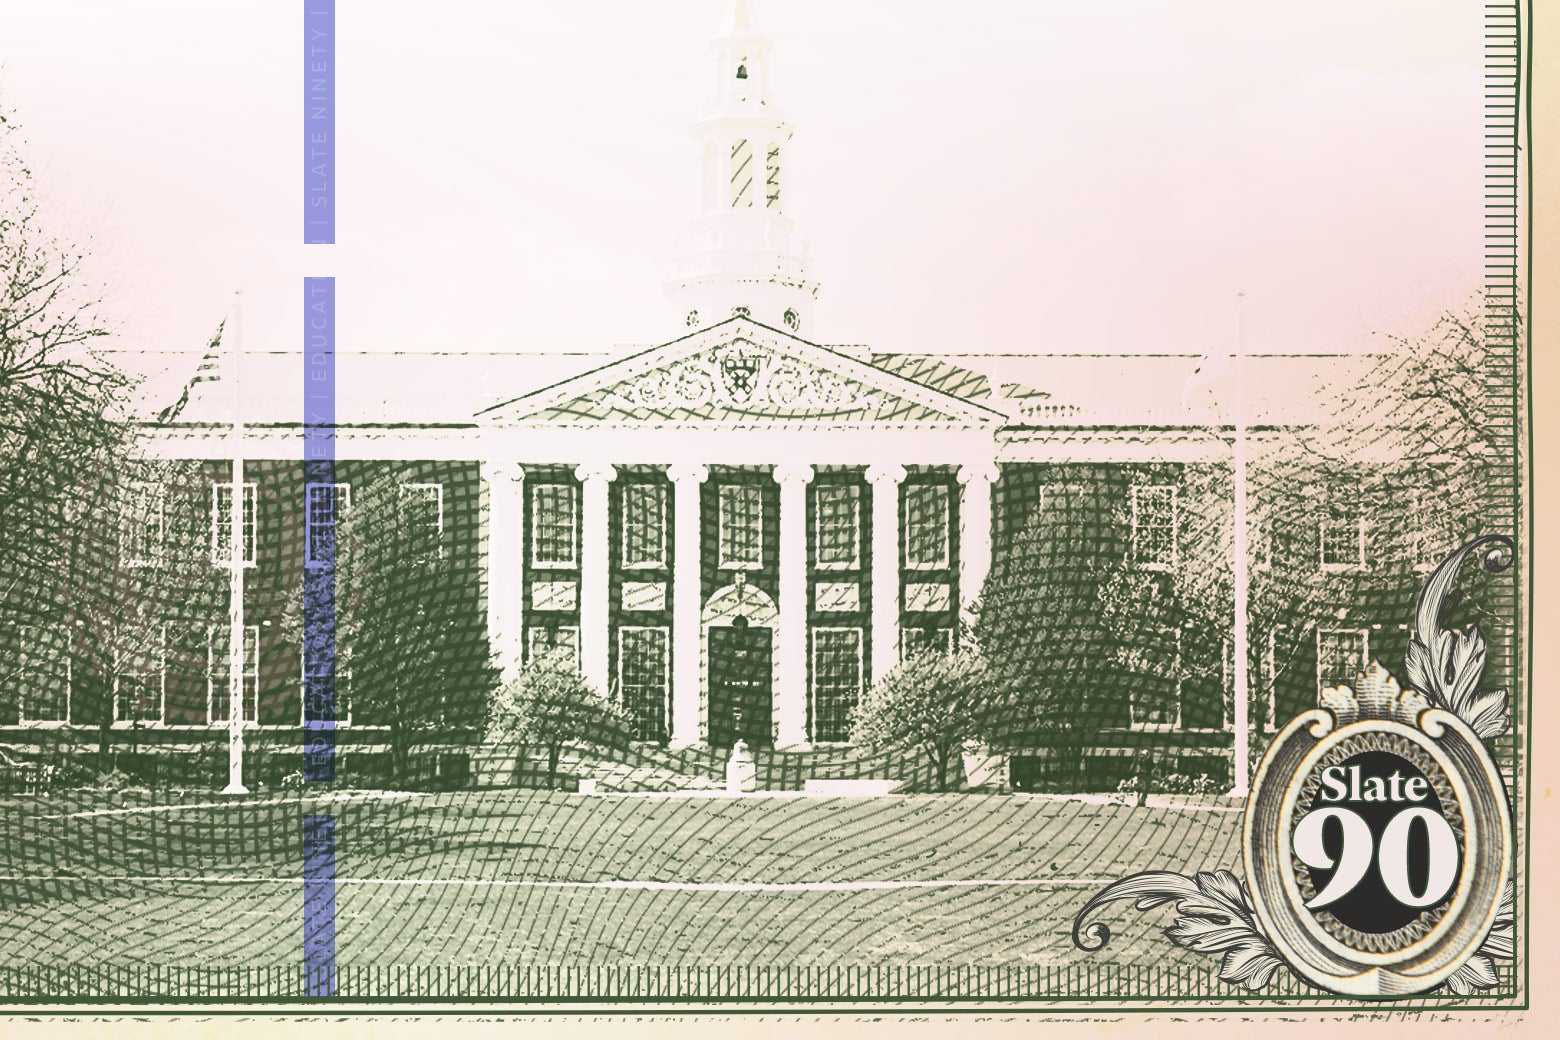 Paper currency showing a building at Harvard University.